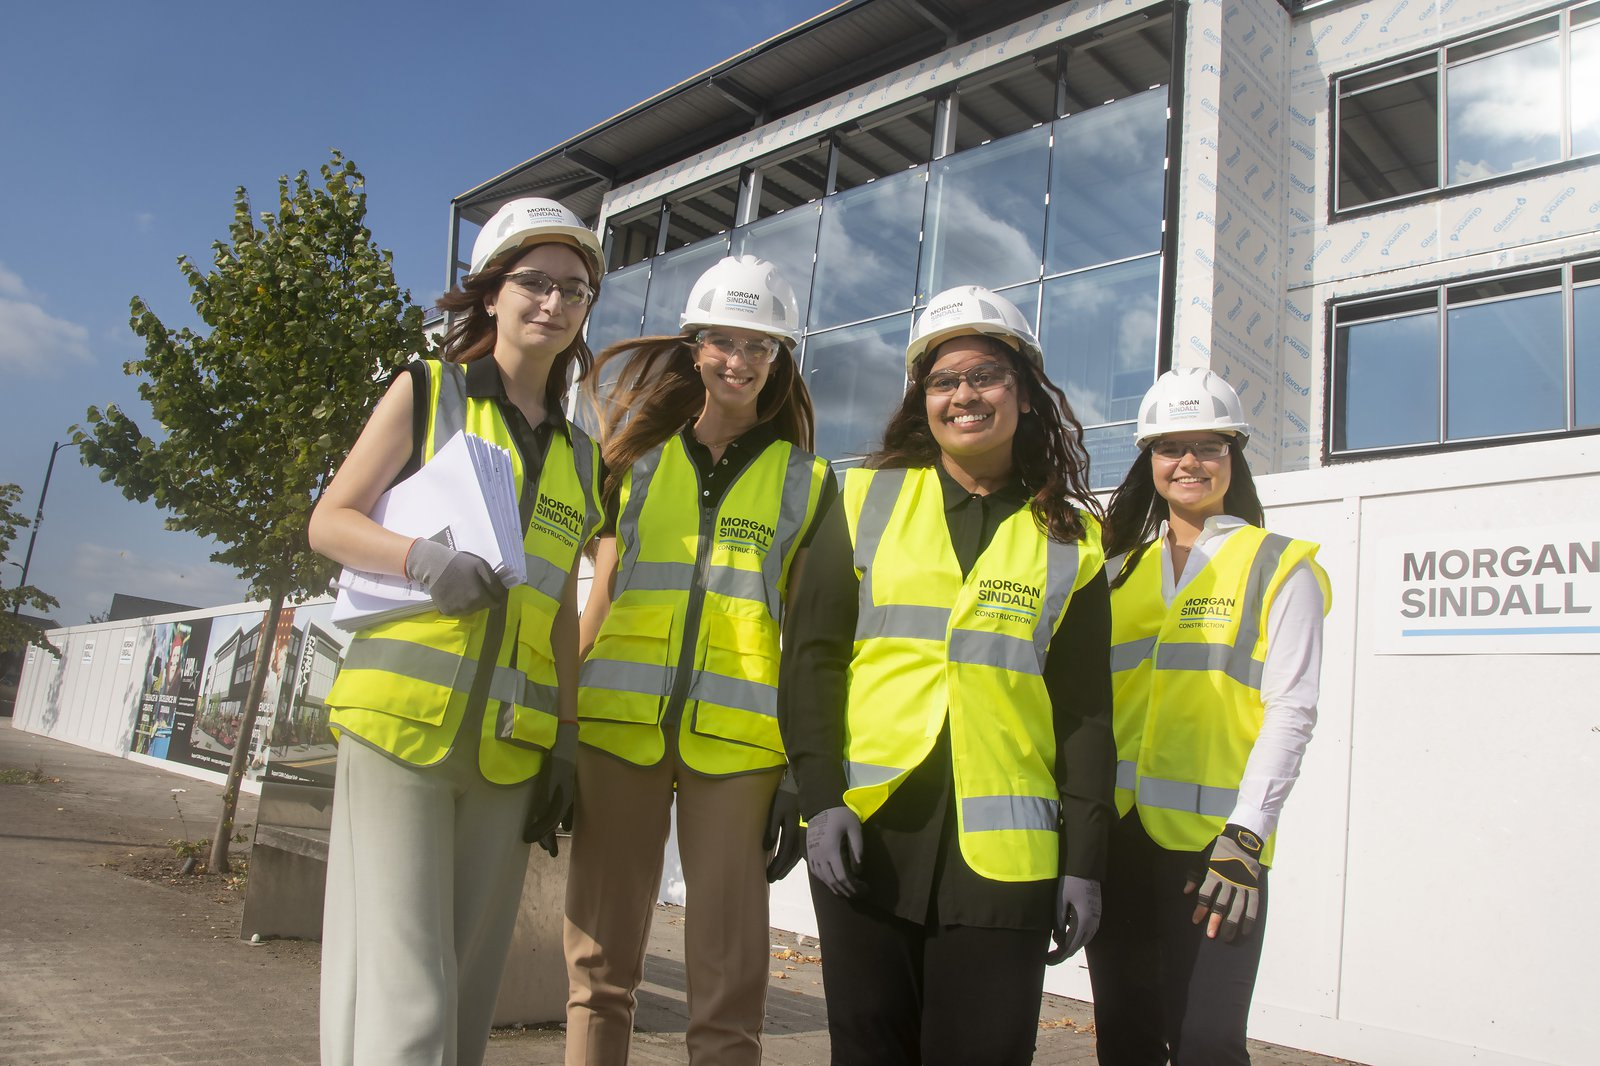 Four female members of the Morgan Sindall Construction team wearing Personal Protective Equipment